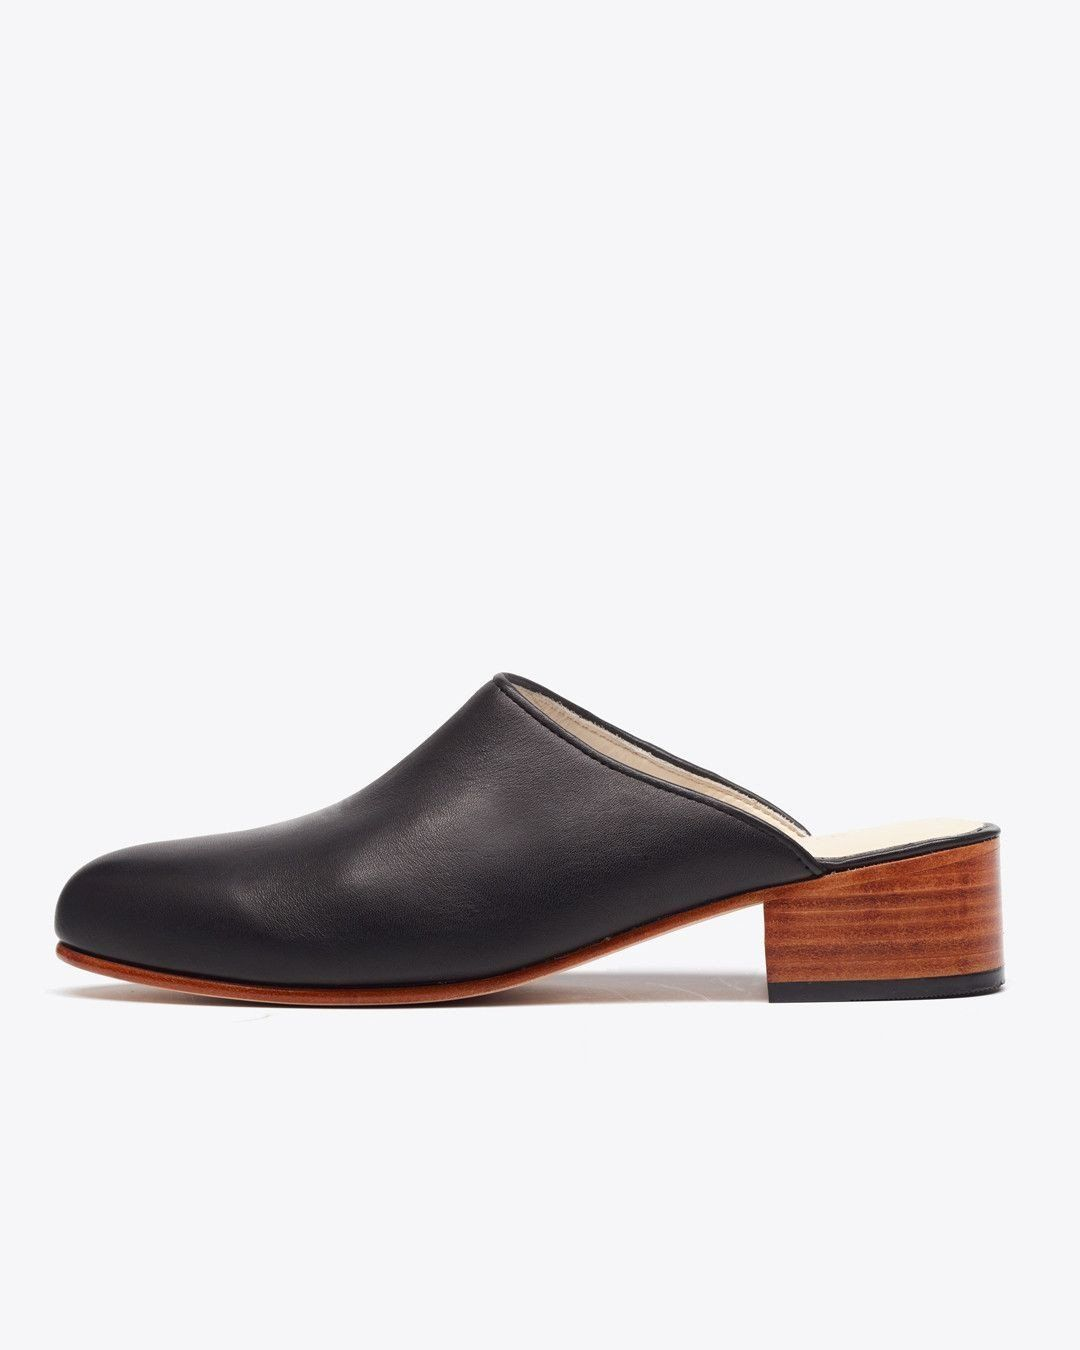 Nisolo Mariella Mule Black Women's Leather Heel Nisolo